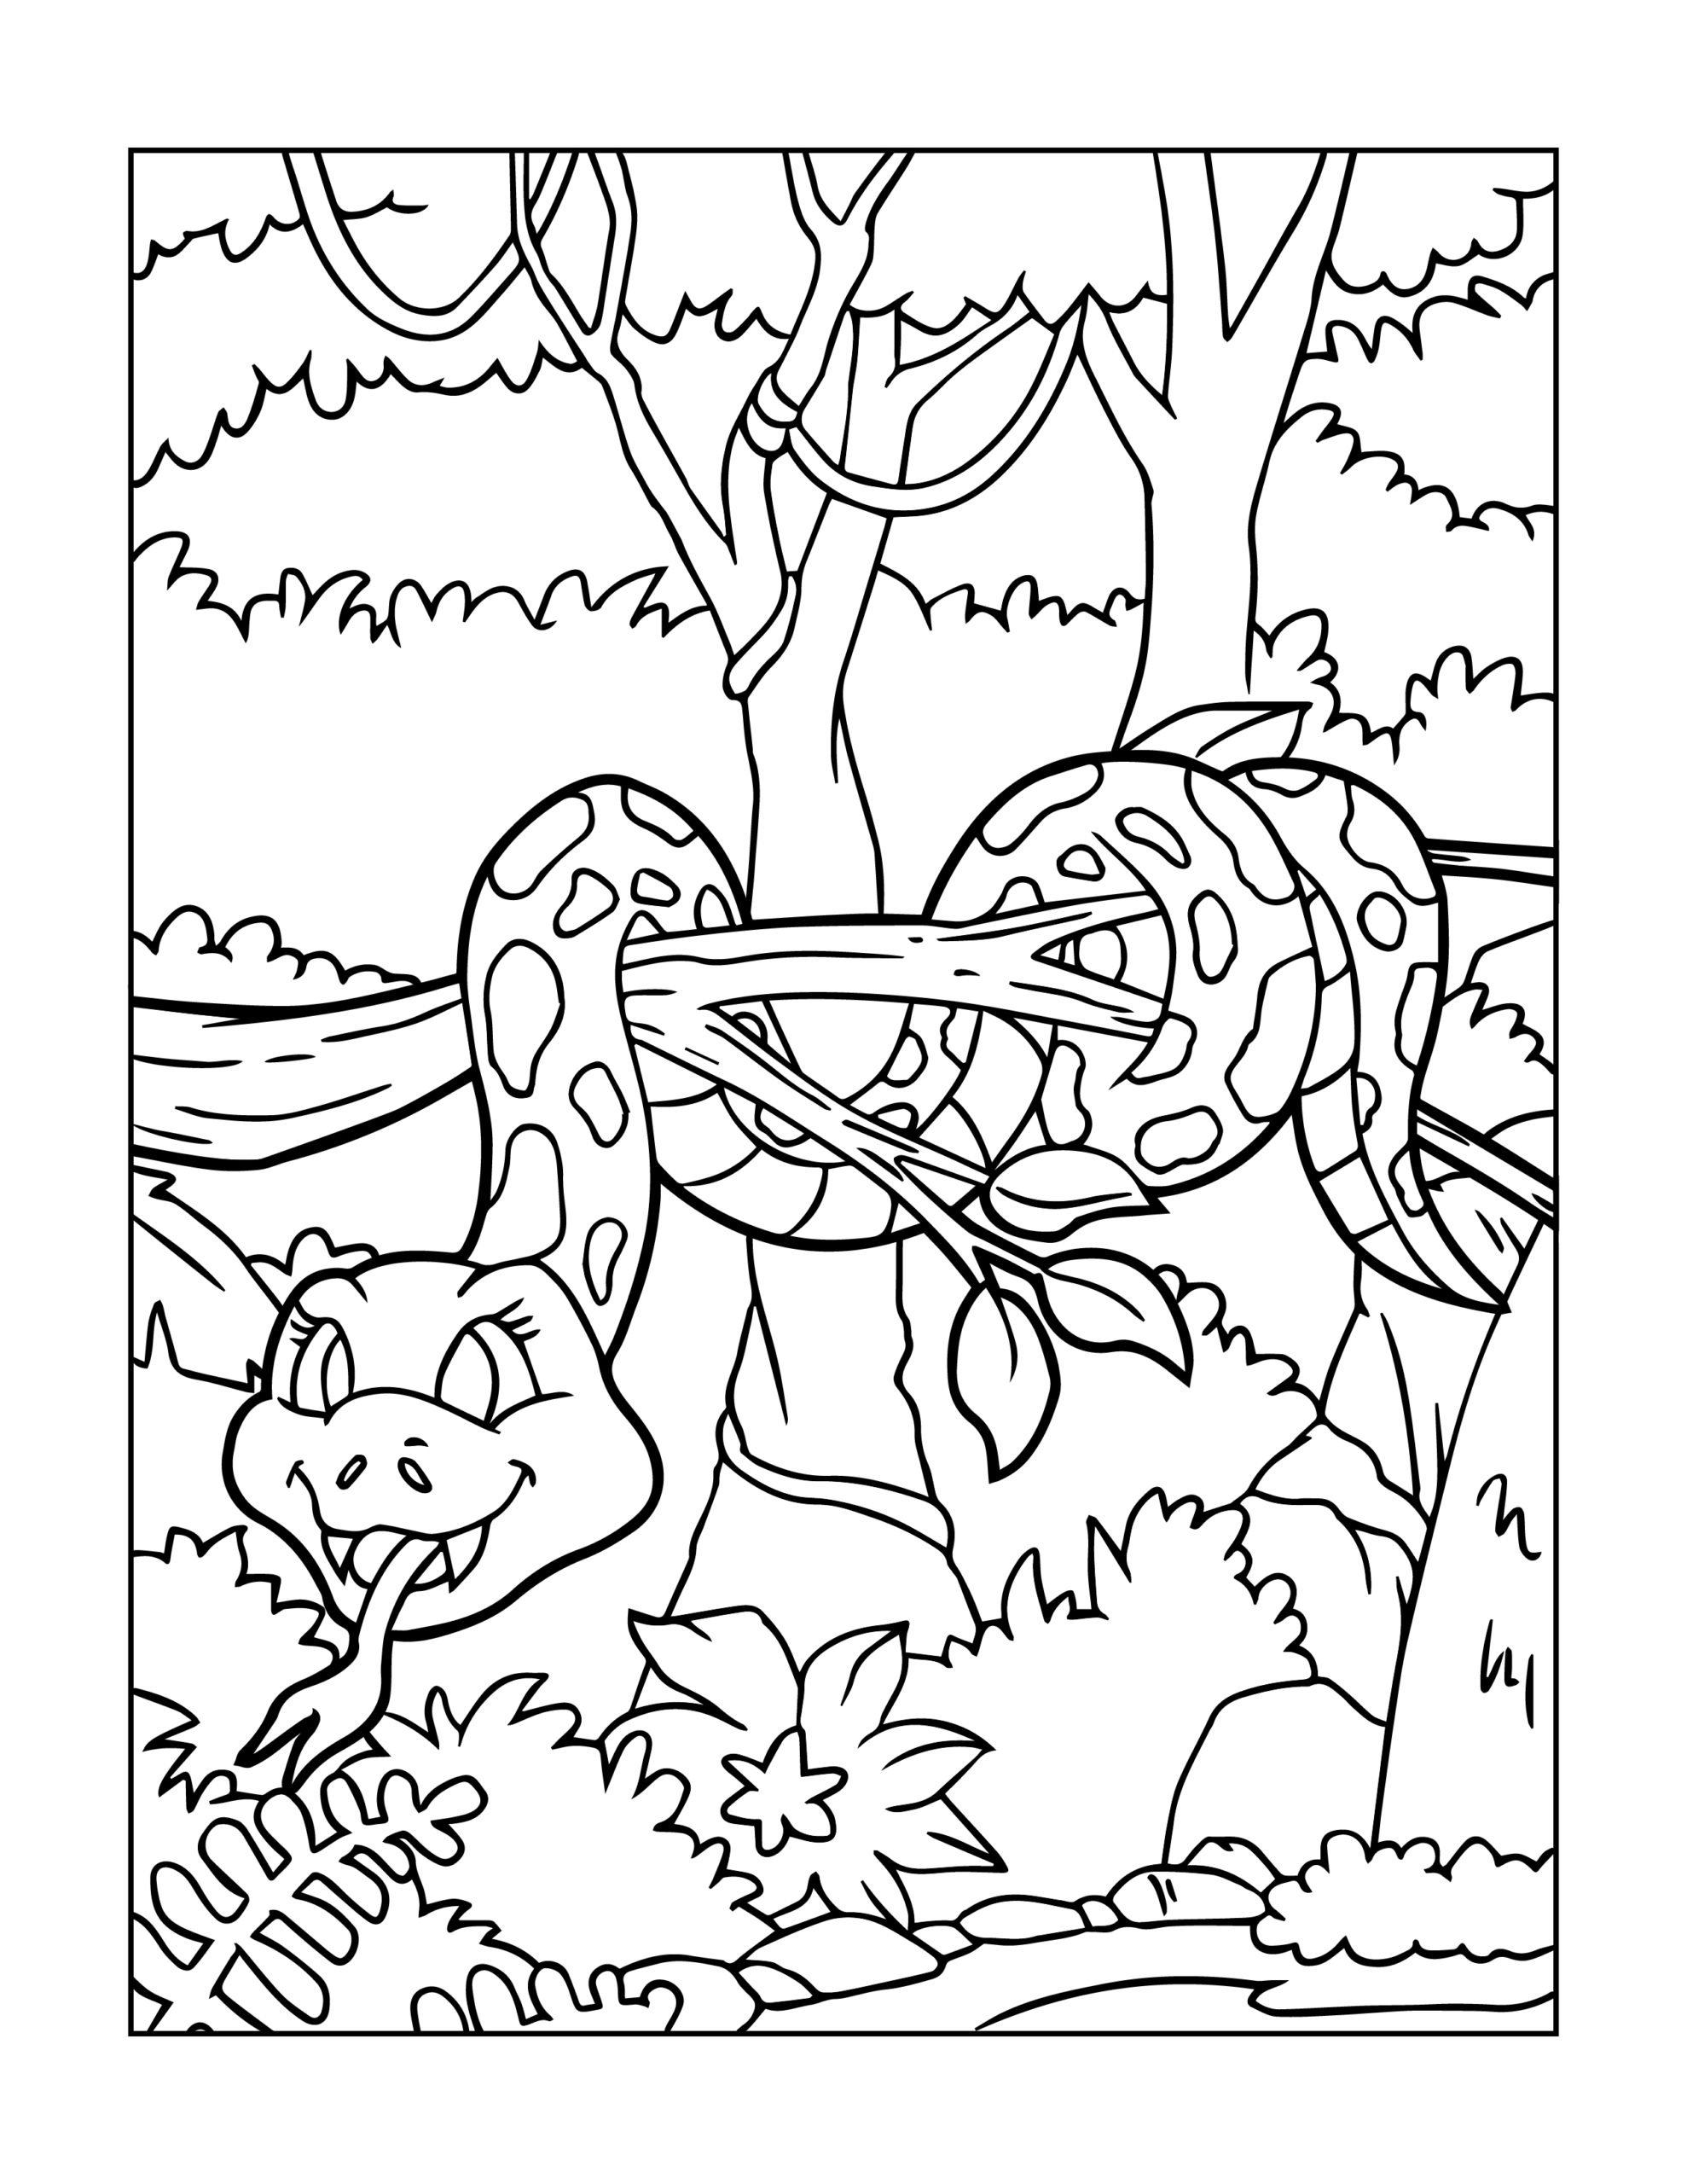 zoo coloring page zoo animal coloring page 2 zoo page coloring